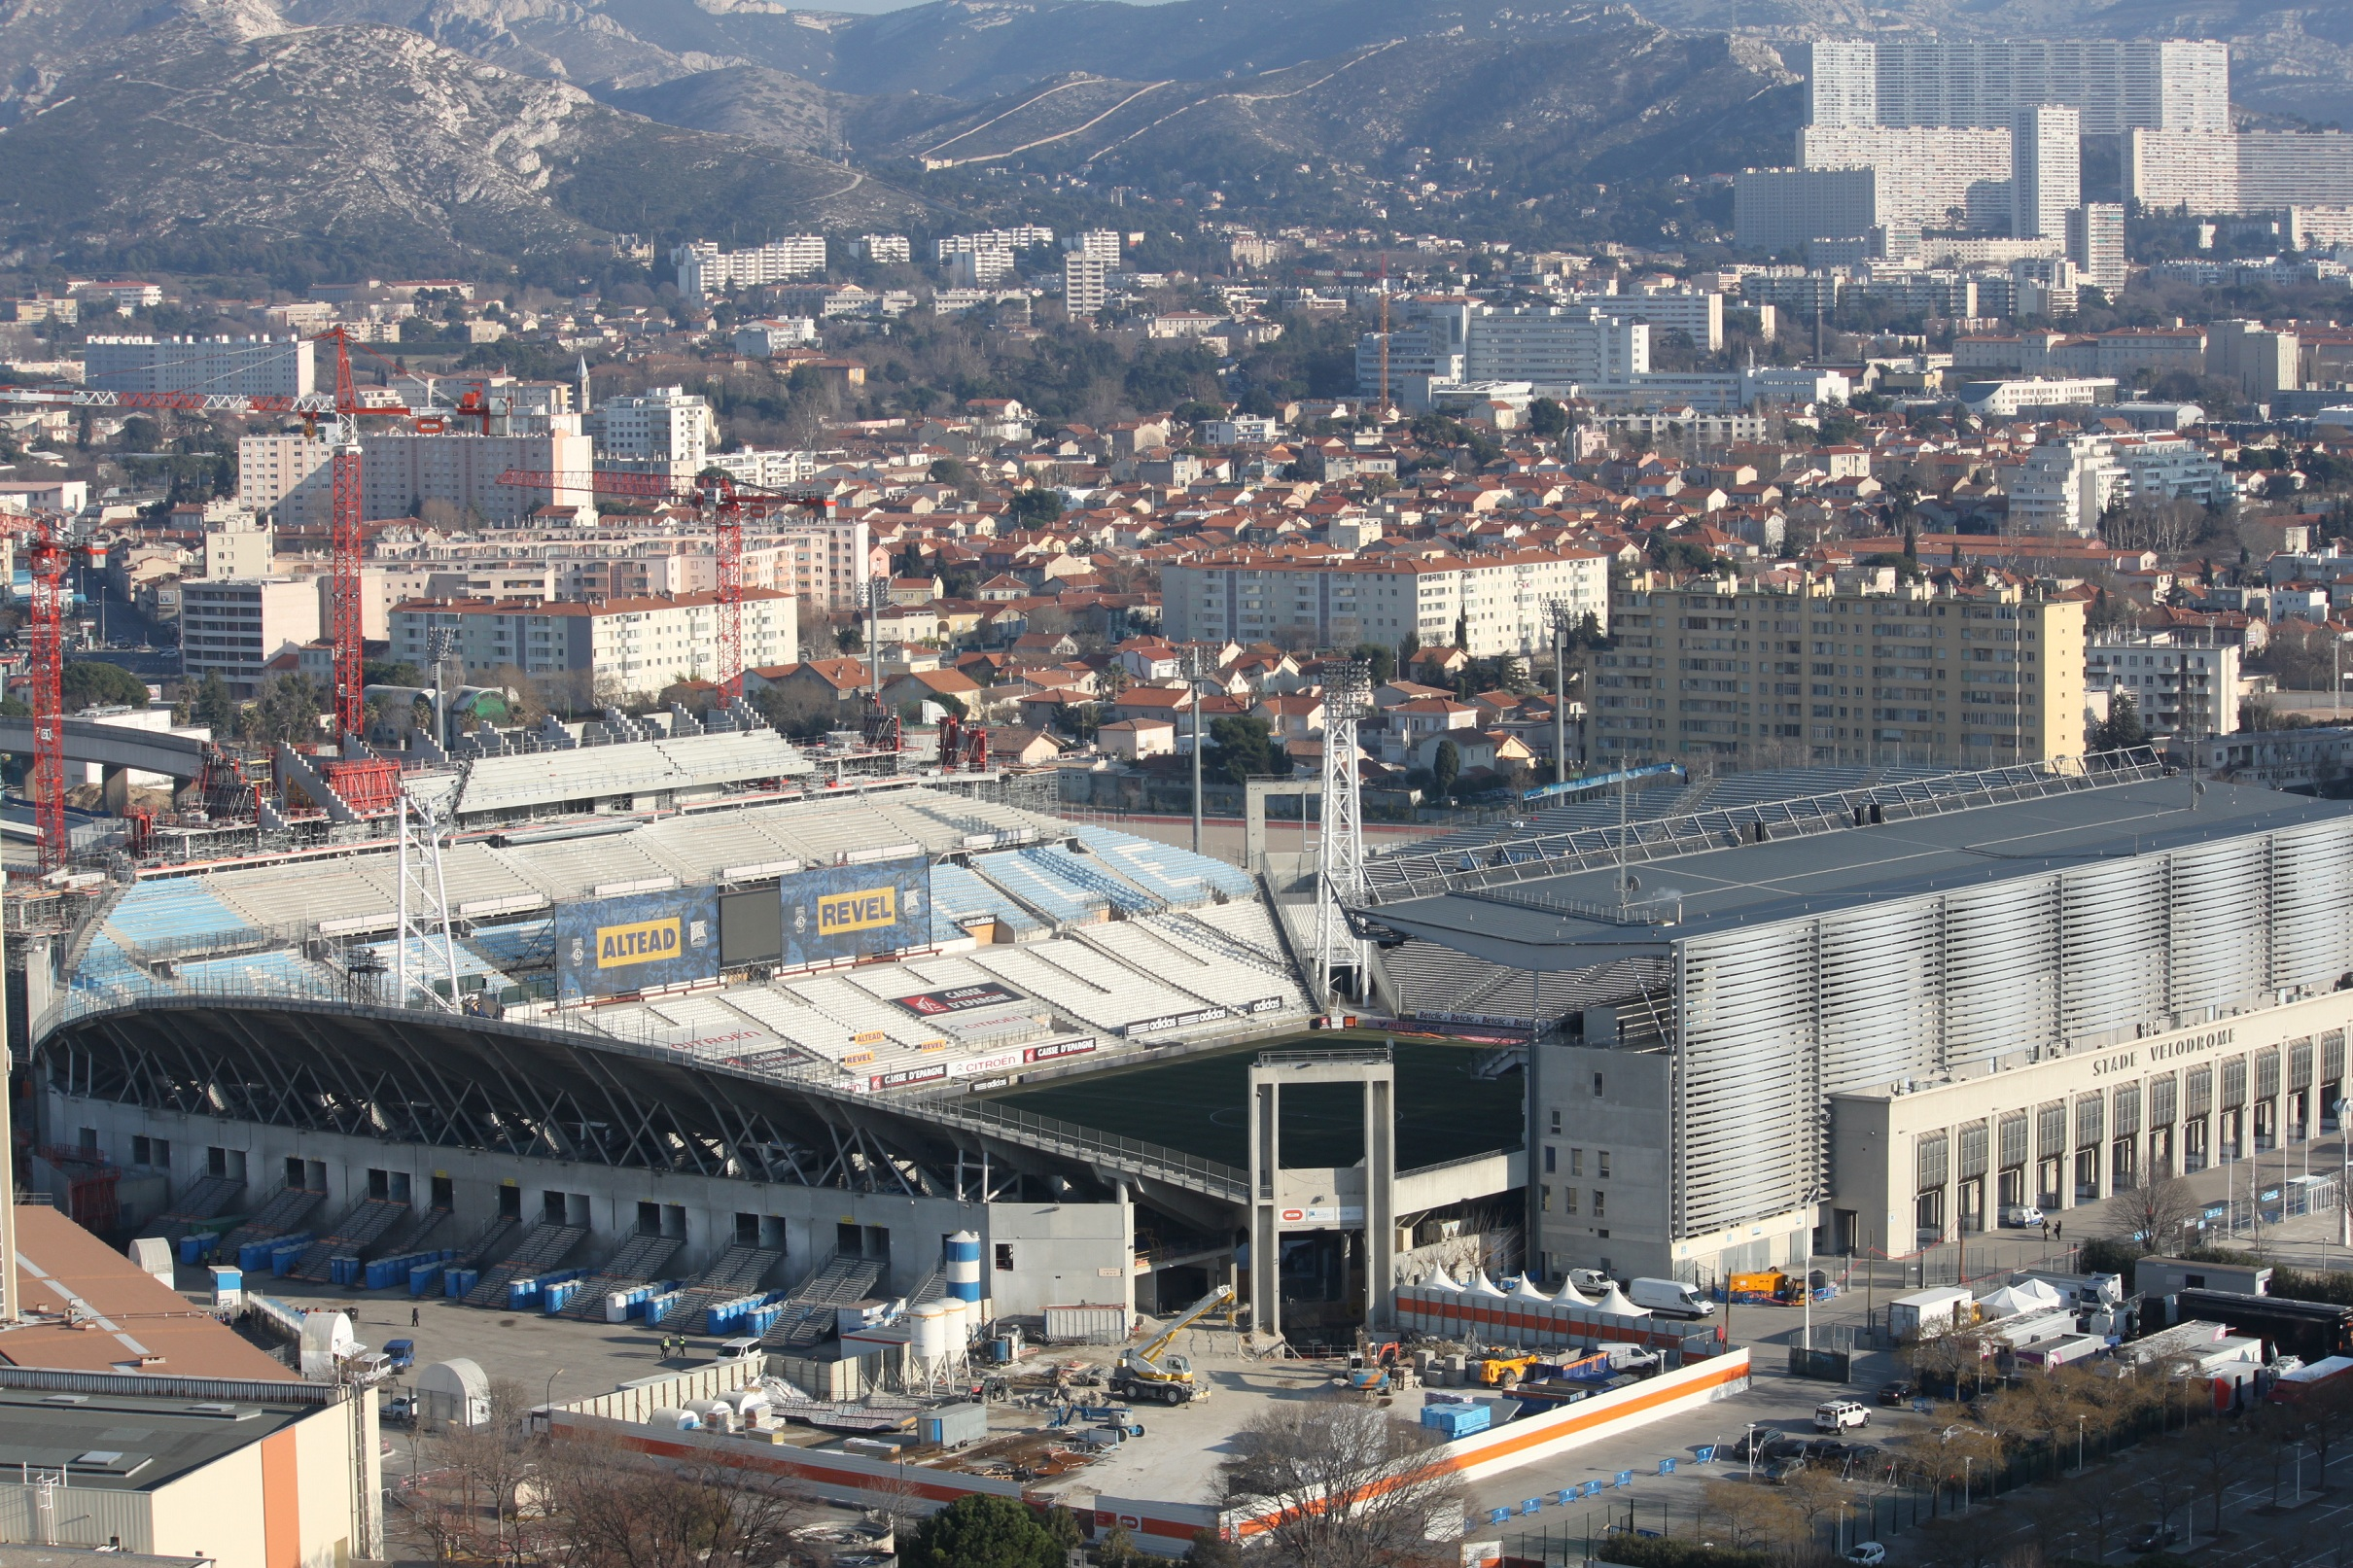 stade velodrome agrandissement couverture 2014 Actualits sur le chantier de rnovation et dagrandissement du Stade Vlodrome de Marseille